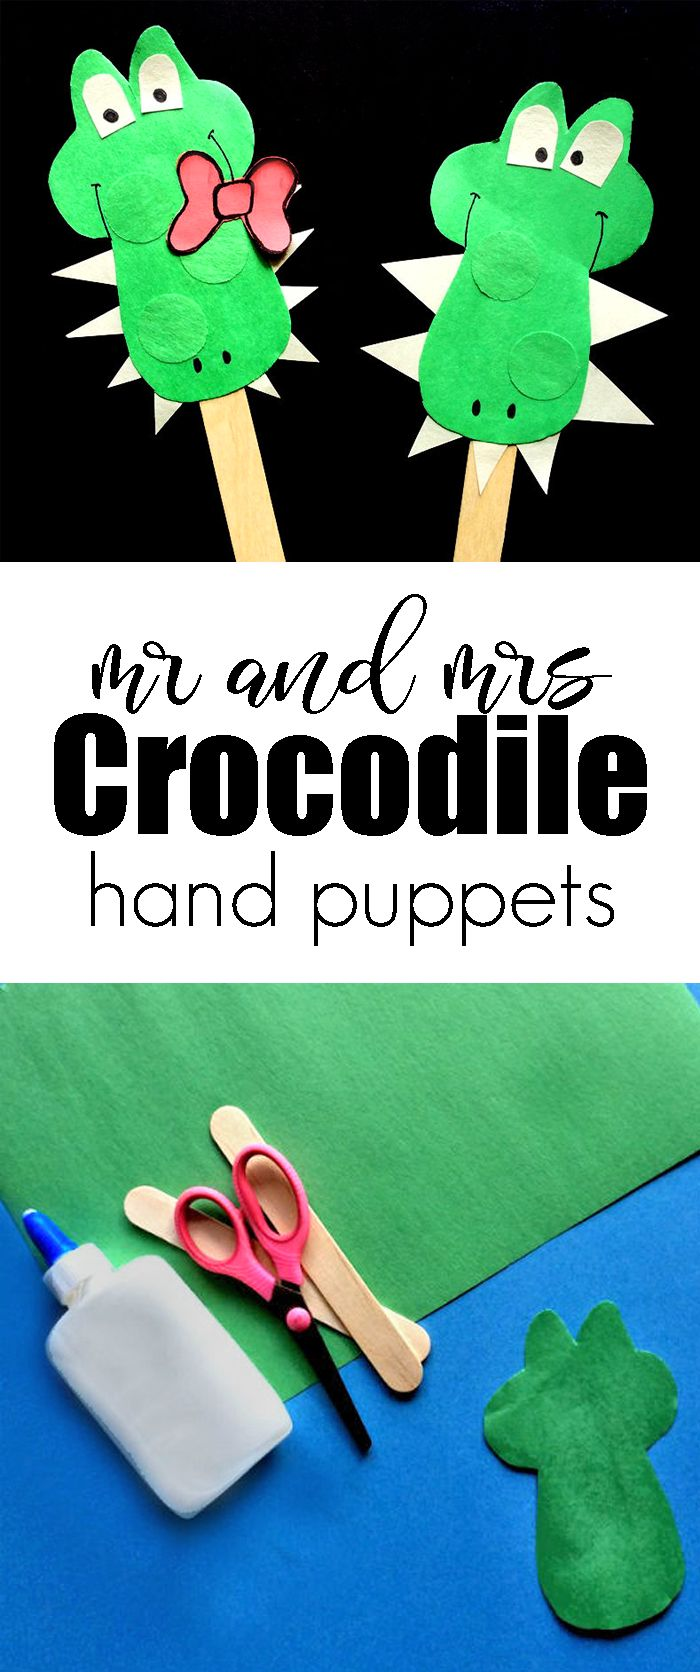 Mr. and Mrs. Crocodile Hand Puppets - An Easy Craft For Kids